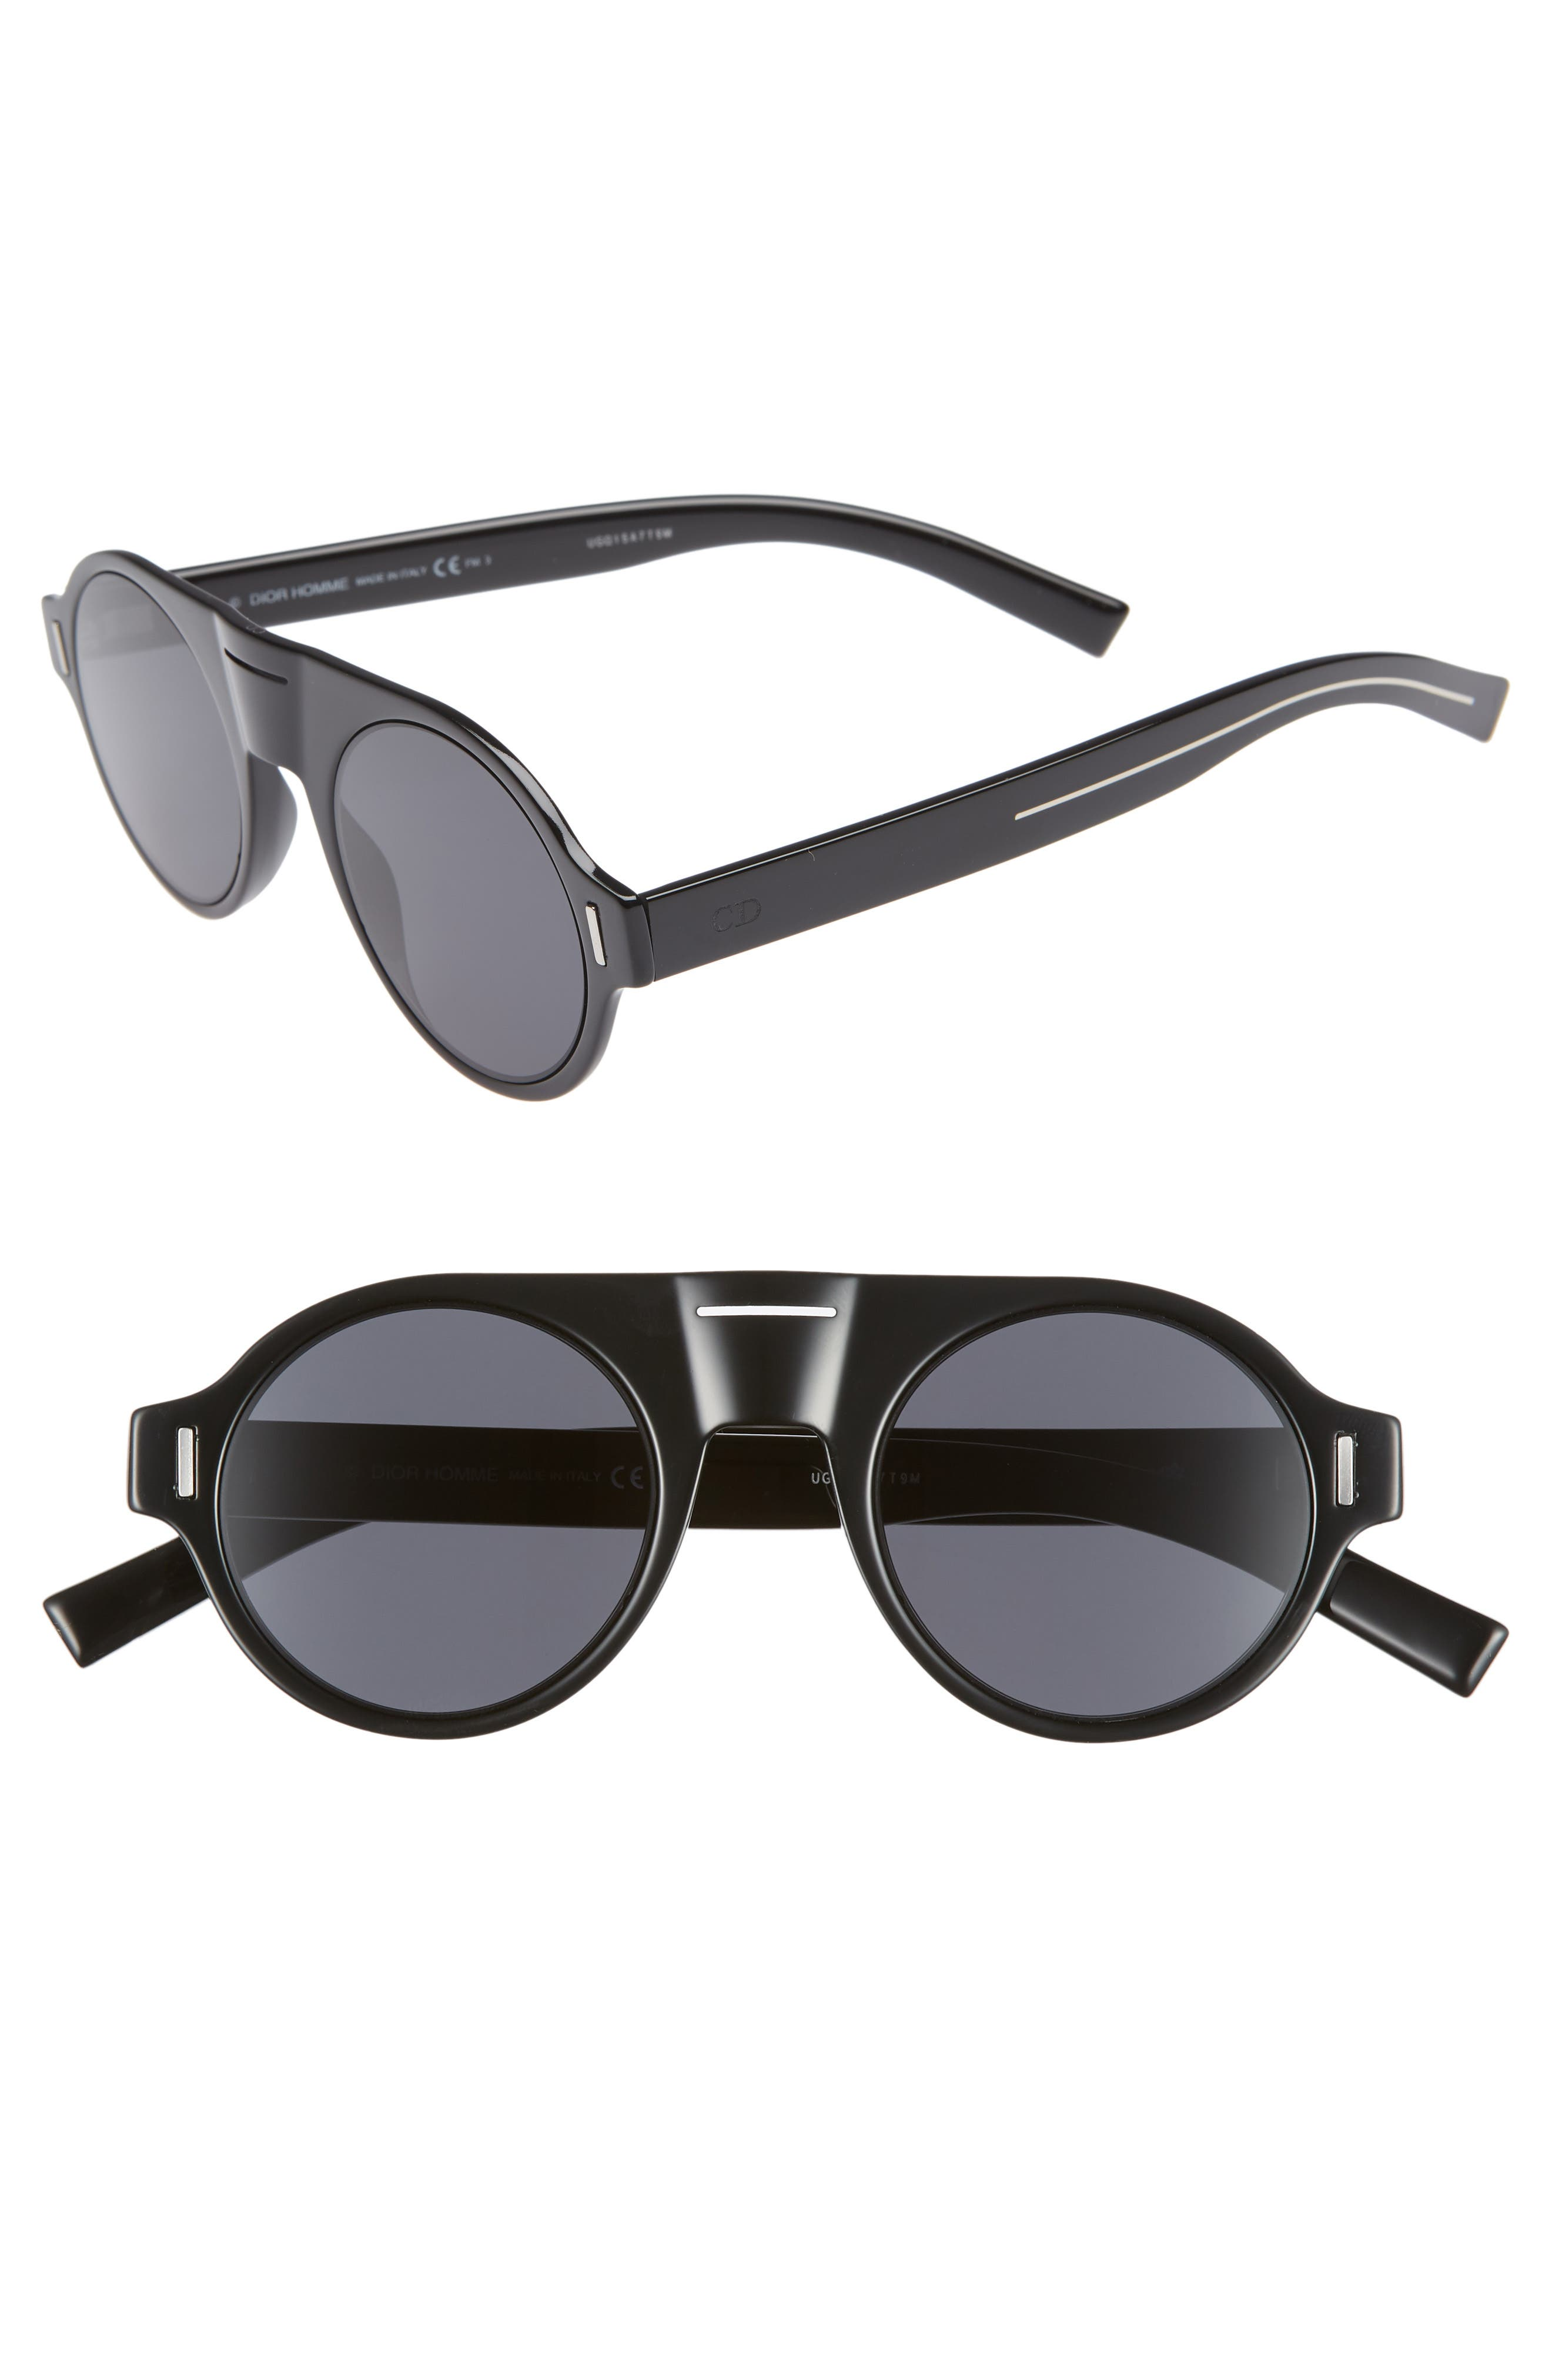 47mm Round Sunglasses,                             Main thumbnail 1, color,                             BLACK